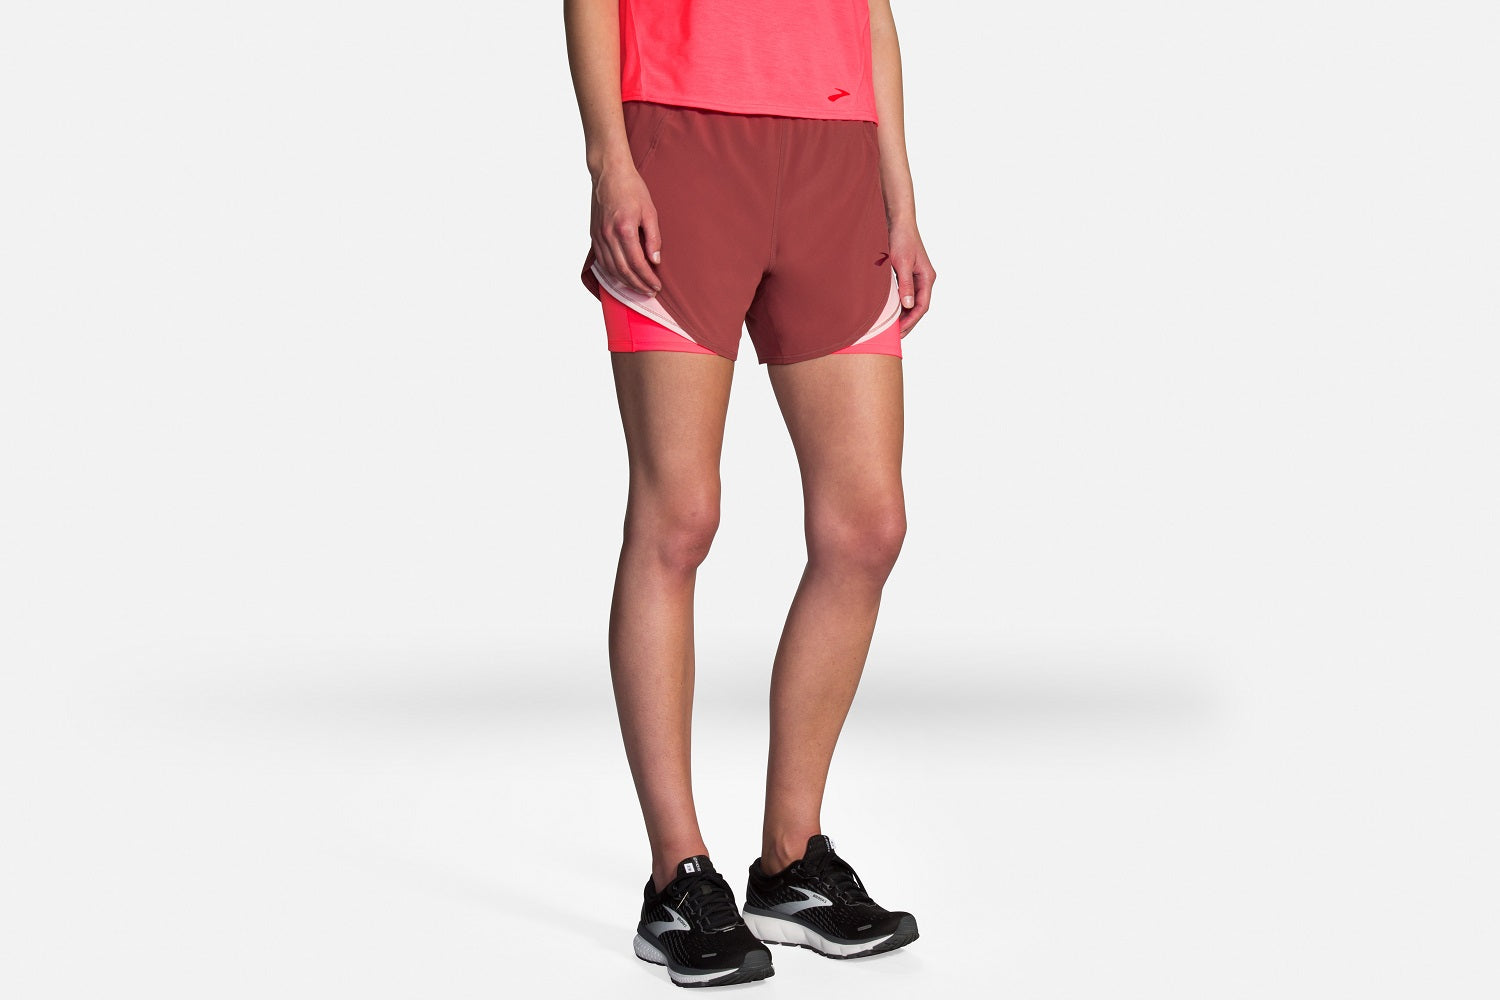 BROOKS-Chaser-2in1-Short-abbigliamento-da-running-donna-rosa